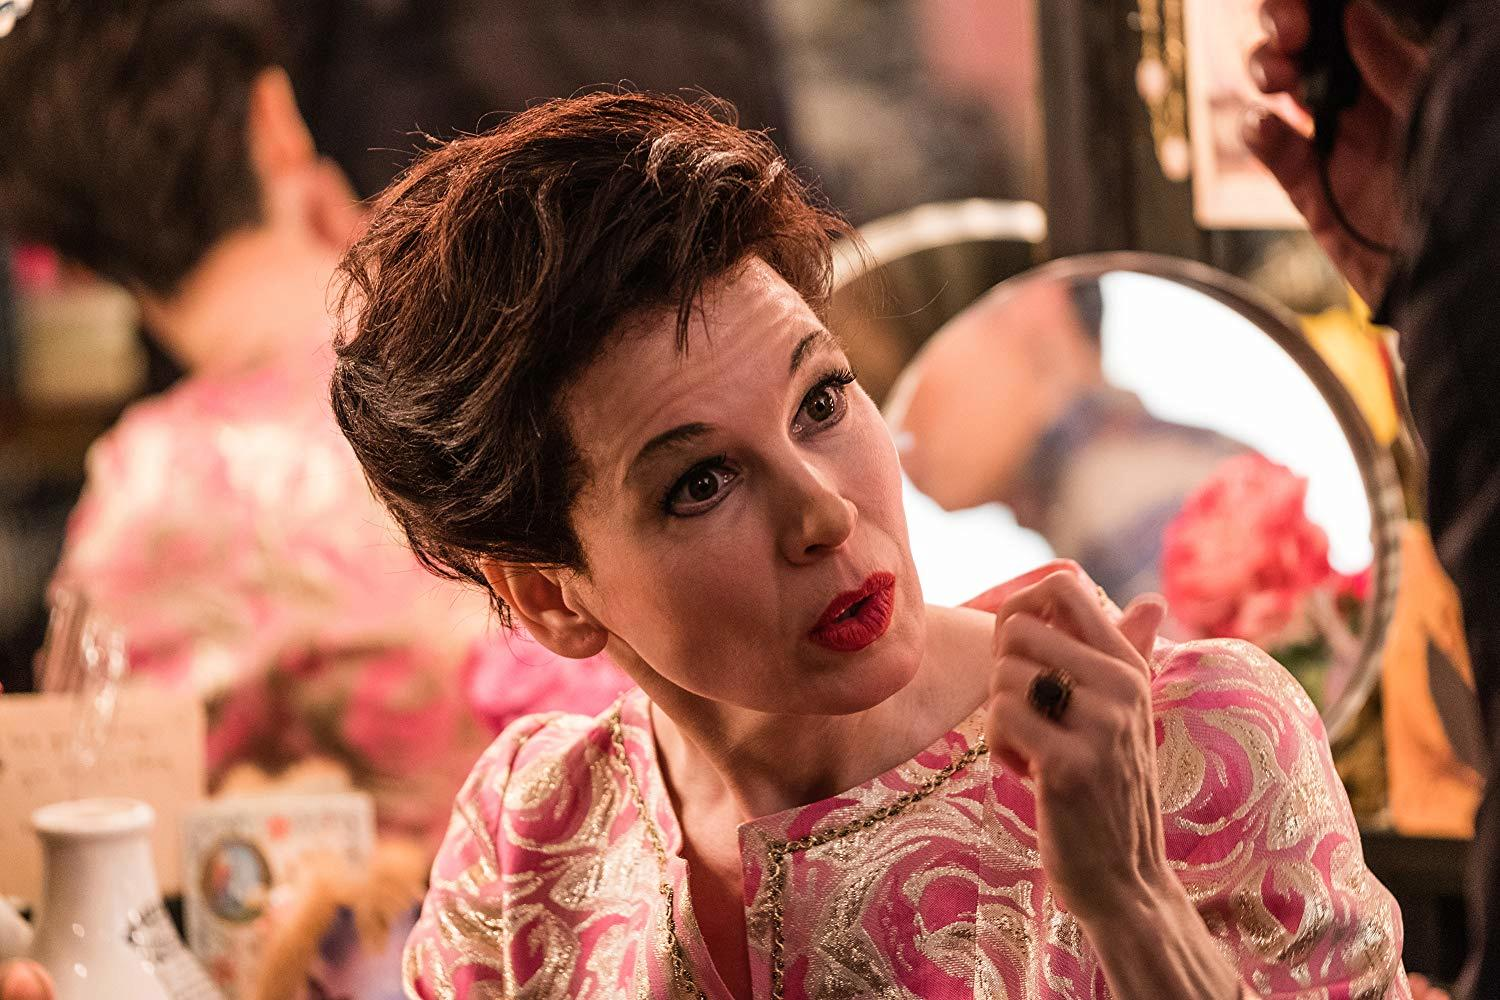 Judy: Renée Zellweger portrays a troubled but triumphant Judy Garland in this celebratory musical biopic